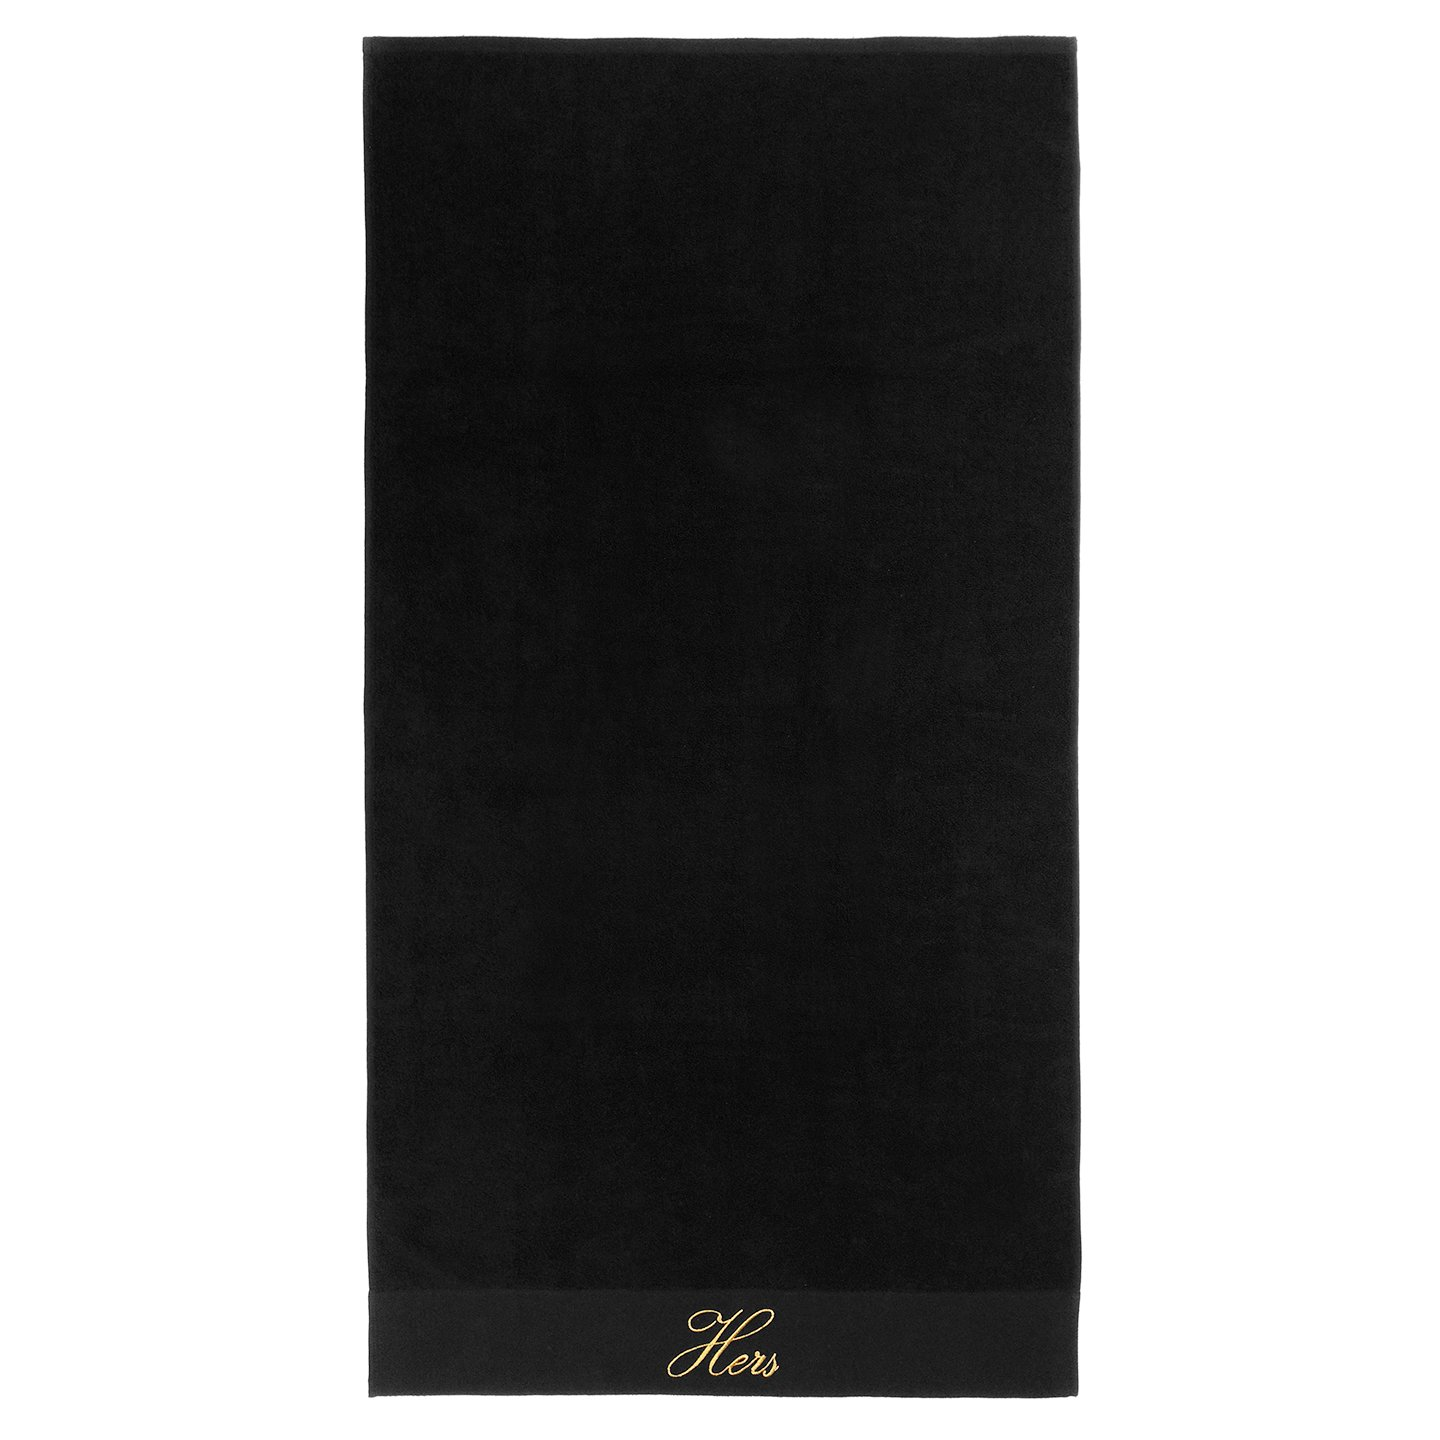 Kaufman - Terry Cloth Bathrobes 100% Cotton - His and Hers Embroidered Velour Shawl Set of Robes with His and Hers Black Towel Set 30''x58'' 4-PK by Ben Kaufman Sales (Image #4)